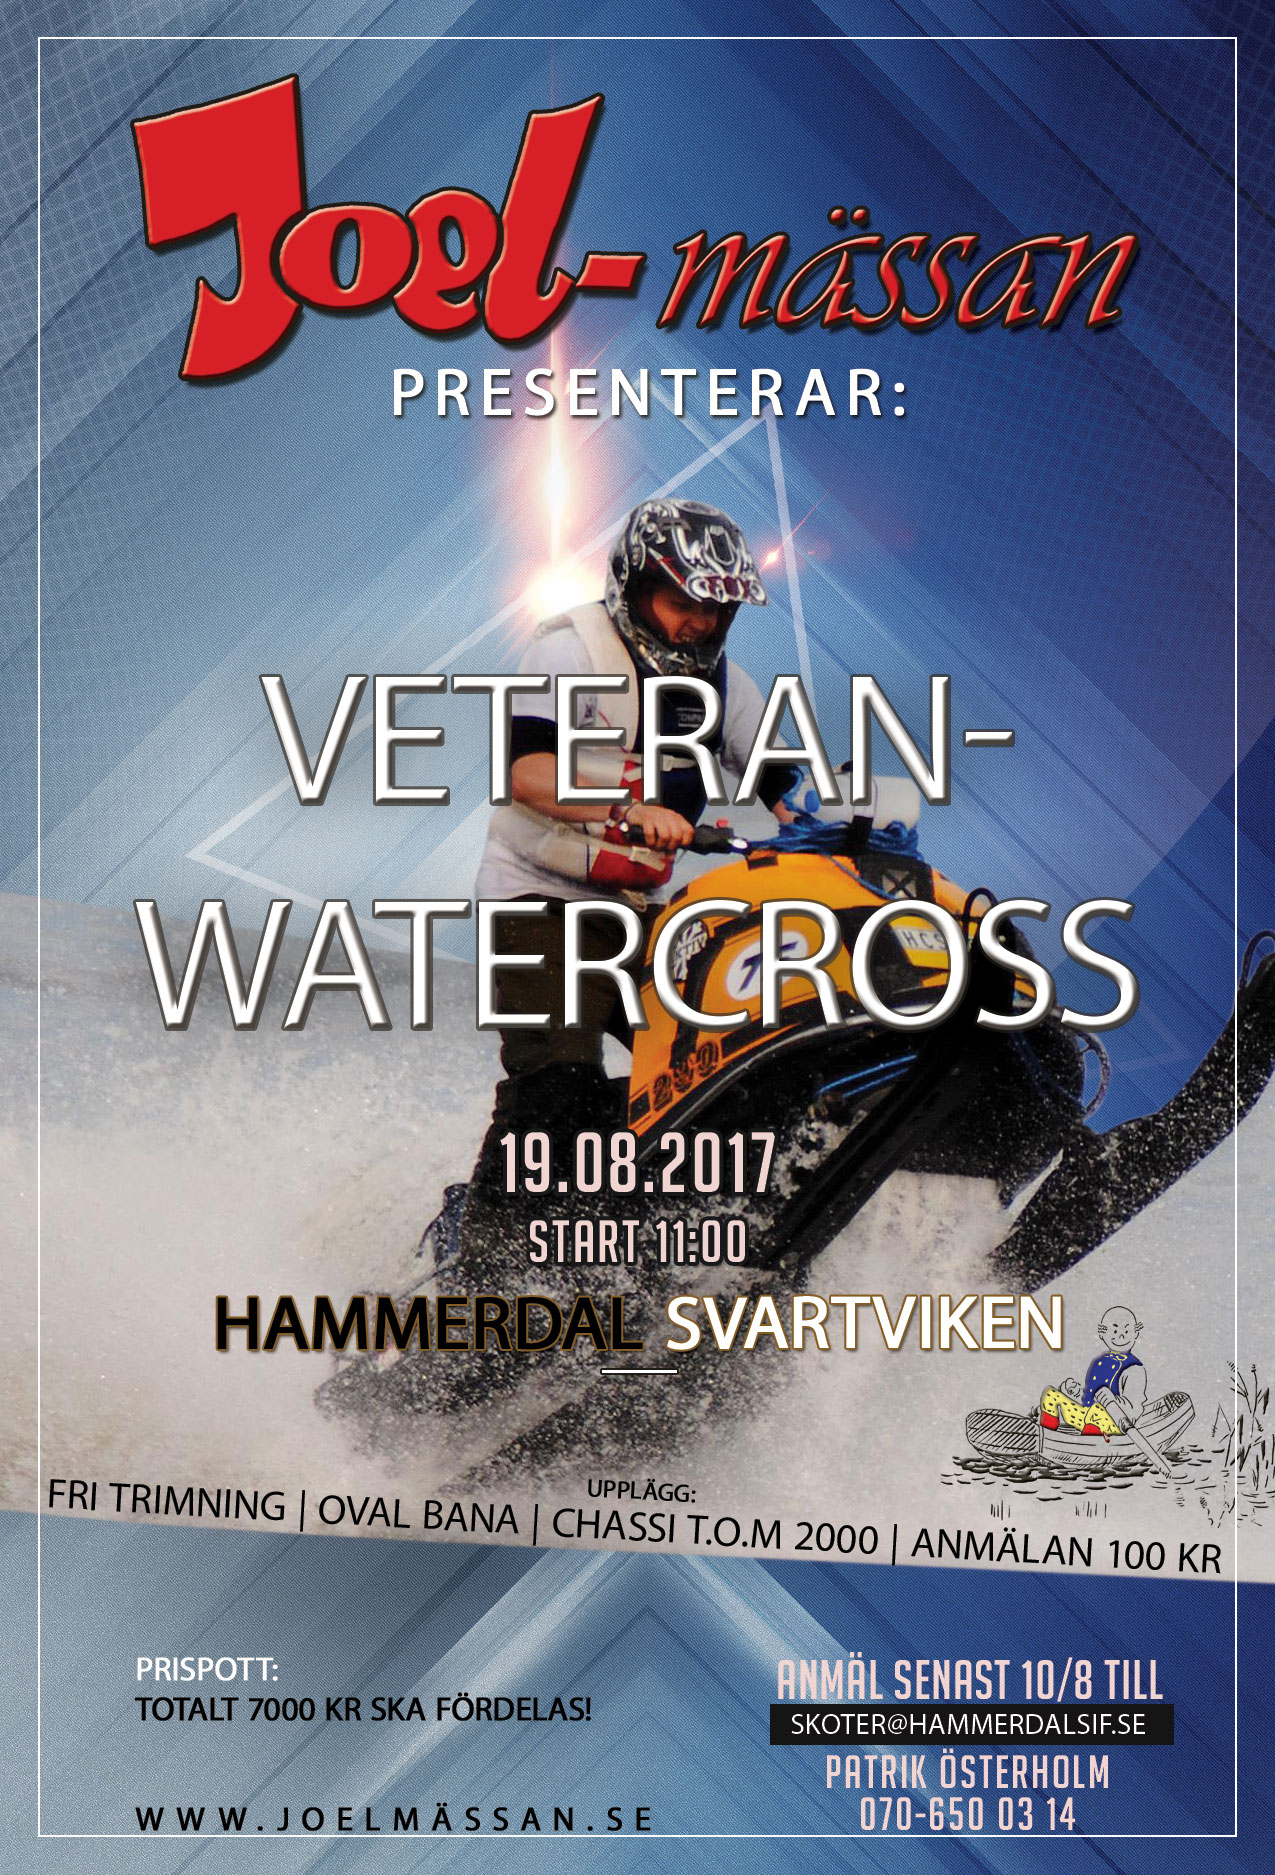 Veteranwatercross